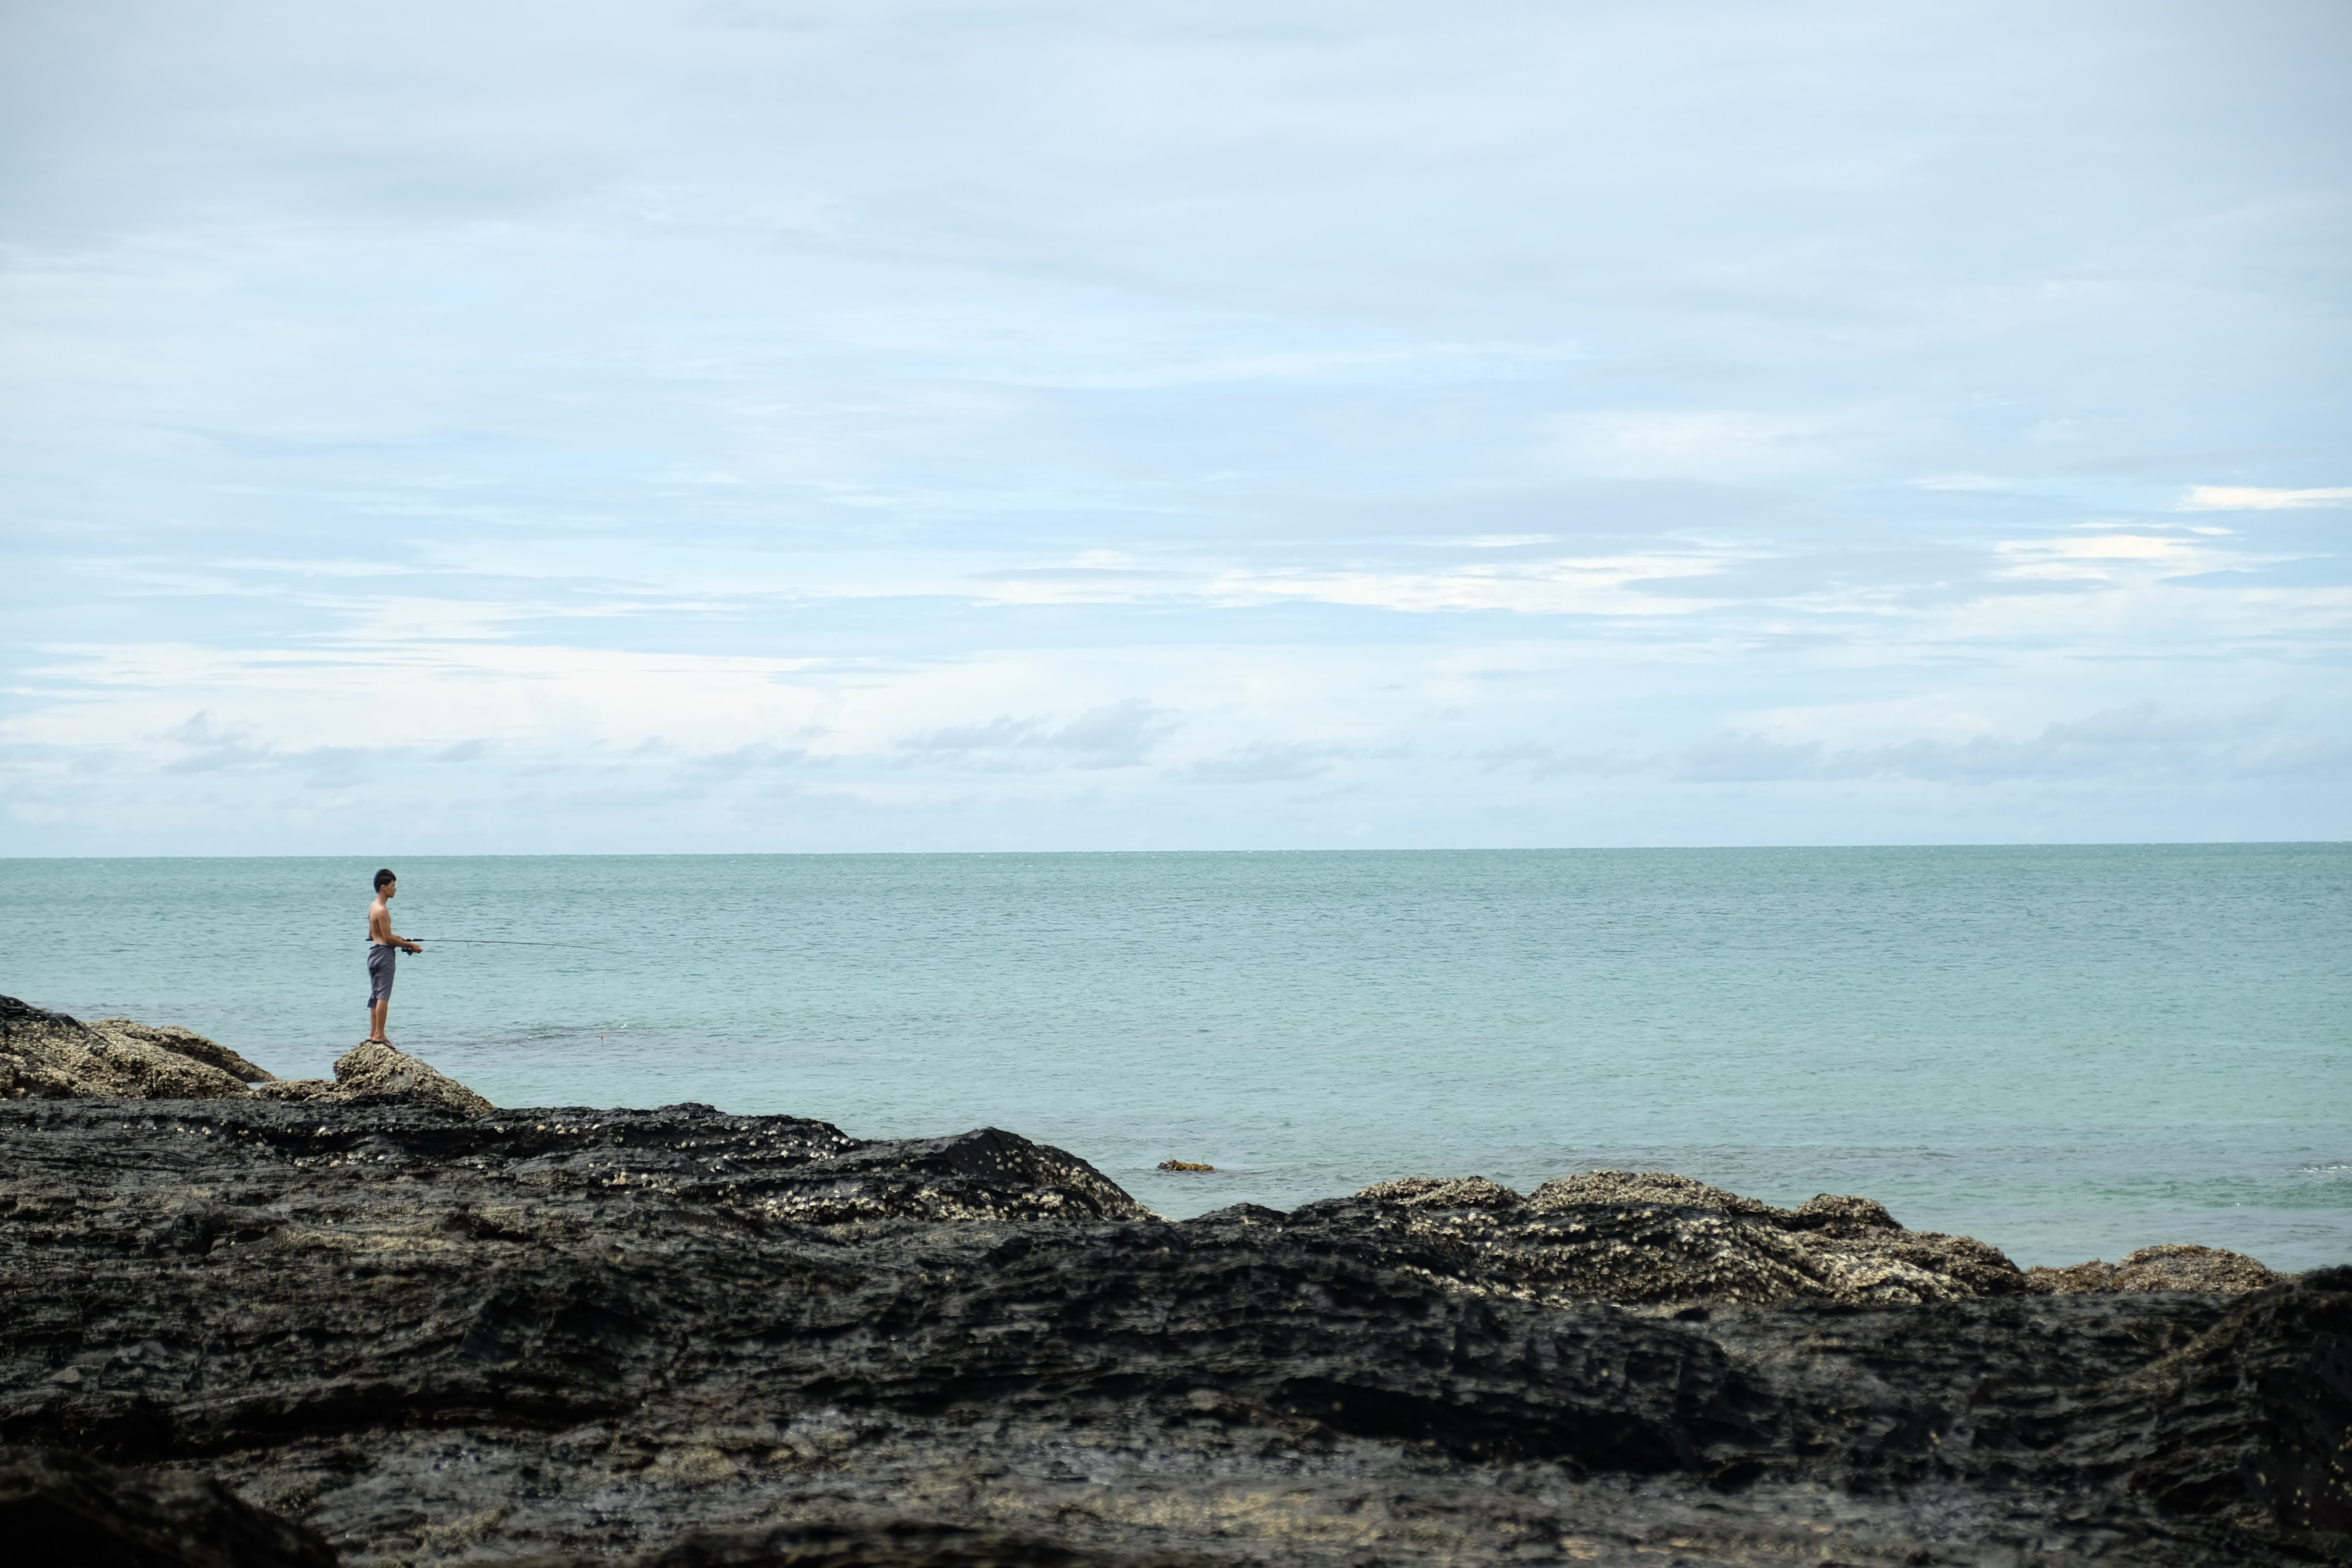 man standing on cliff fronting calm body of water